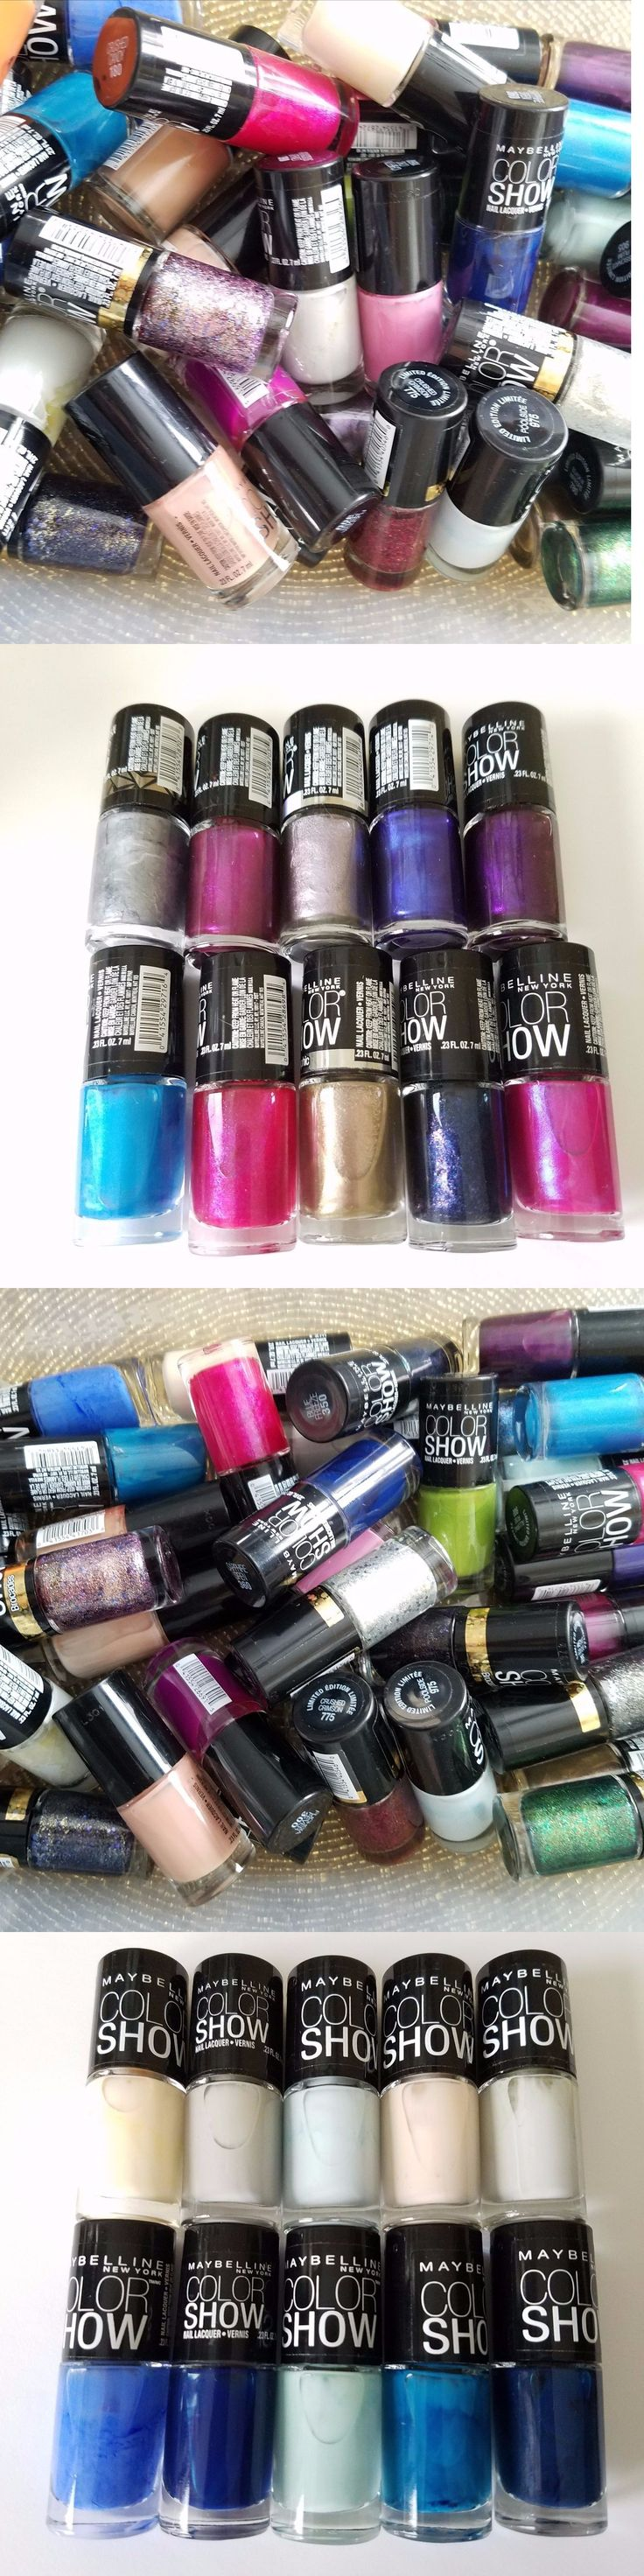 wholesale Nail: Maybelline Color Show Nail Polish Wholesale Lot Of 50 -> BUY IT NOW ONLY: $44.95 on eBay!